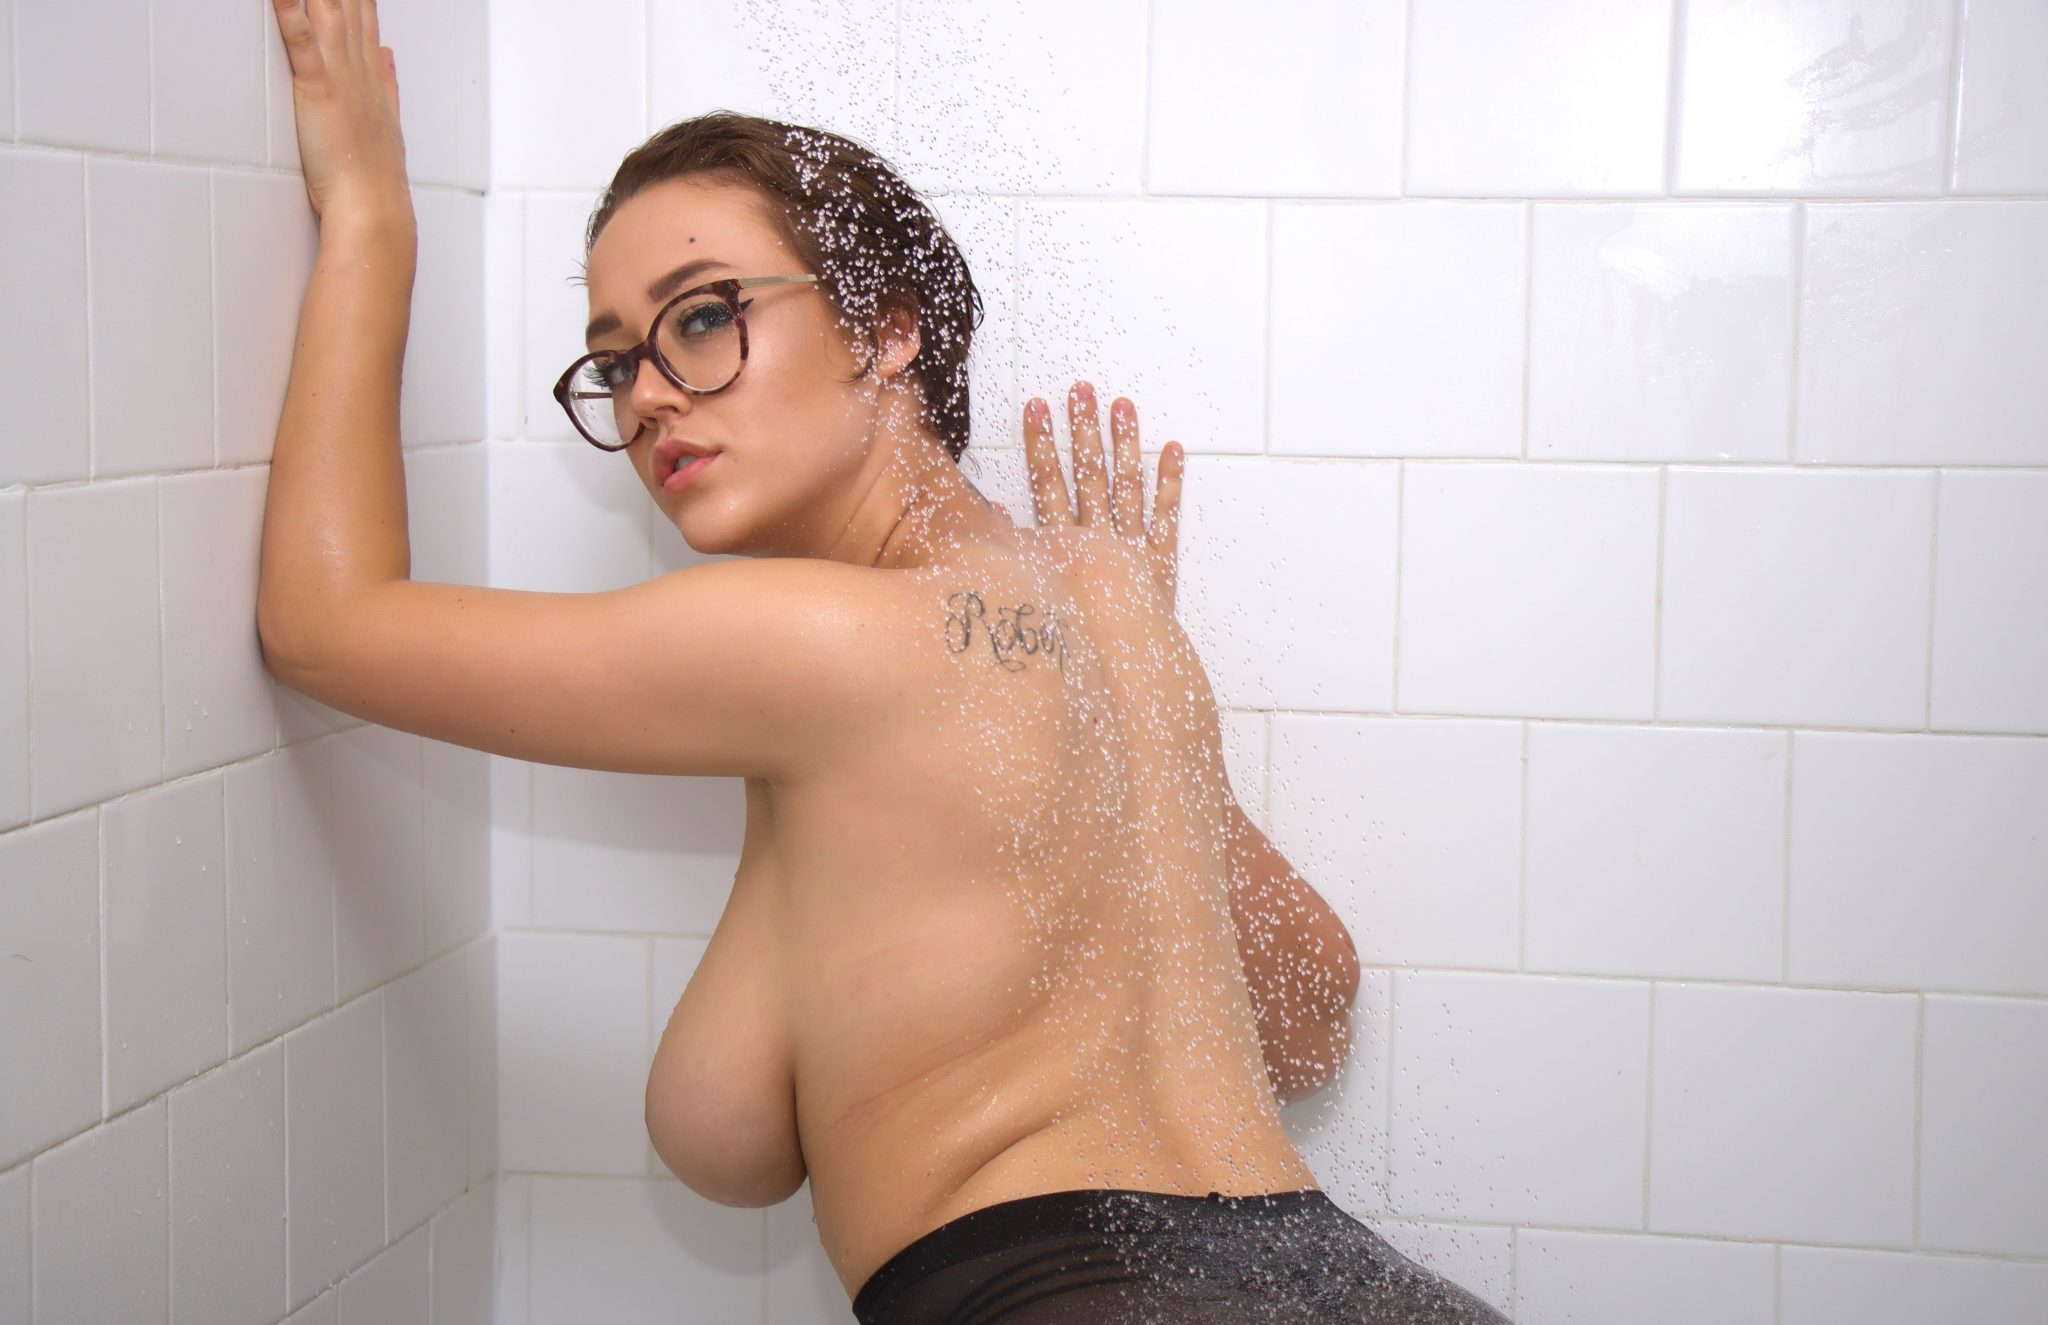 Nadine Nicole Nude After Shower In Casual